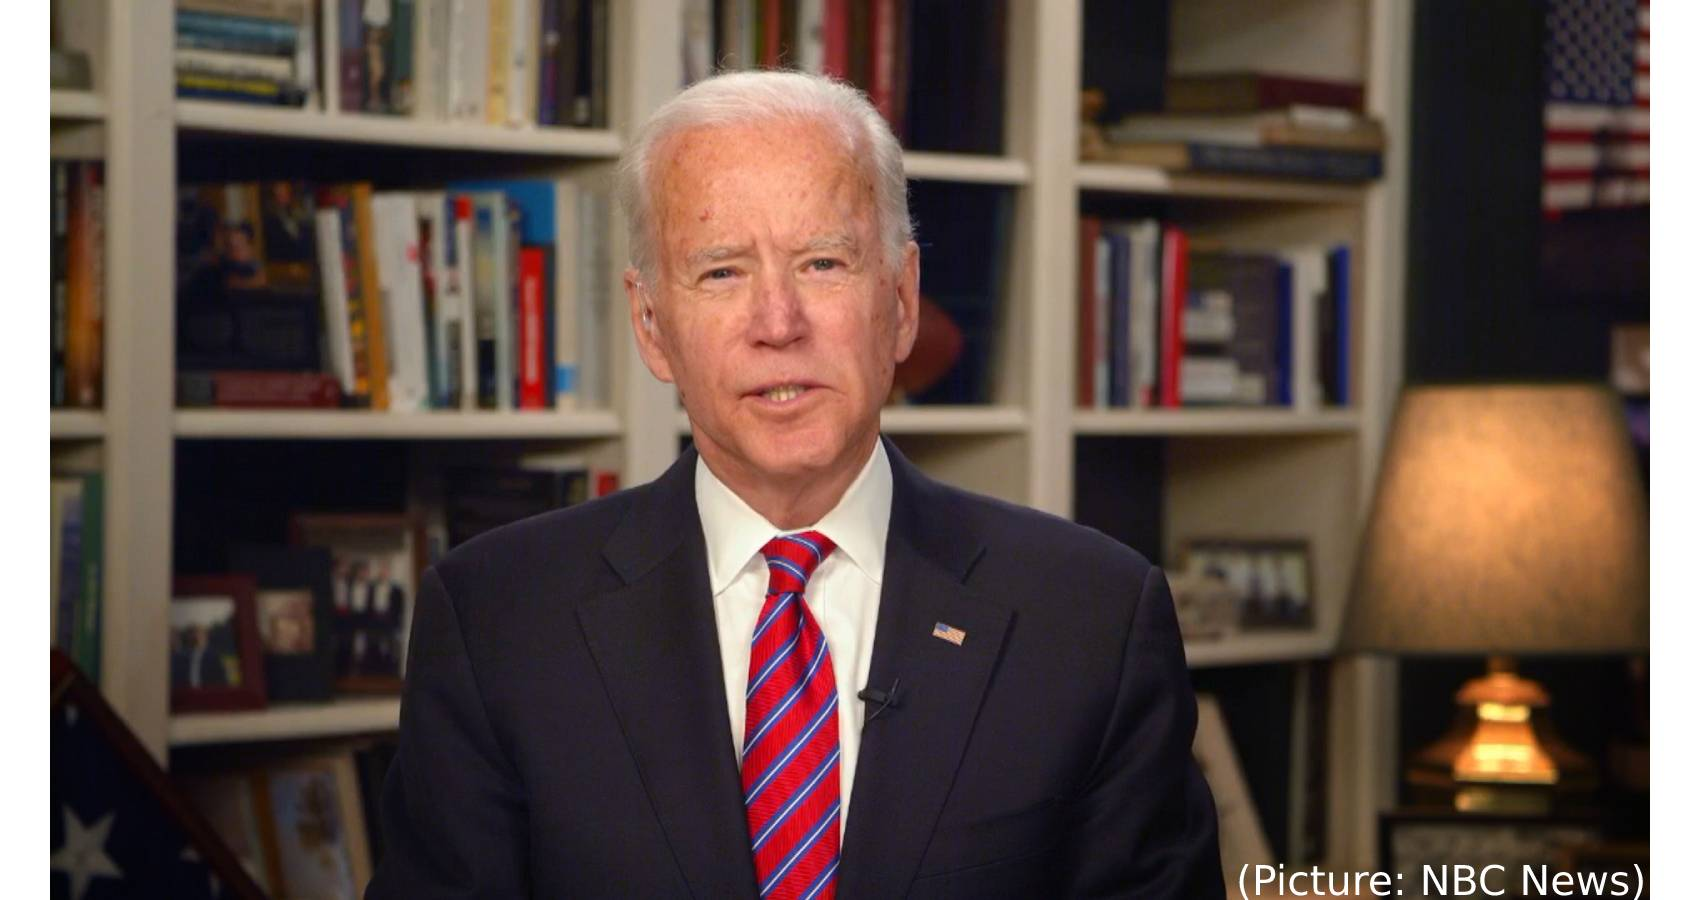 Joe Biden's Approval Rating Stays Steady For 6 Months